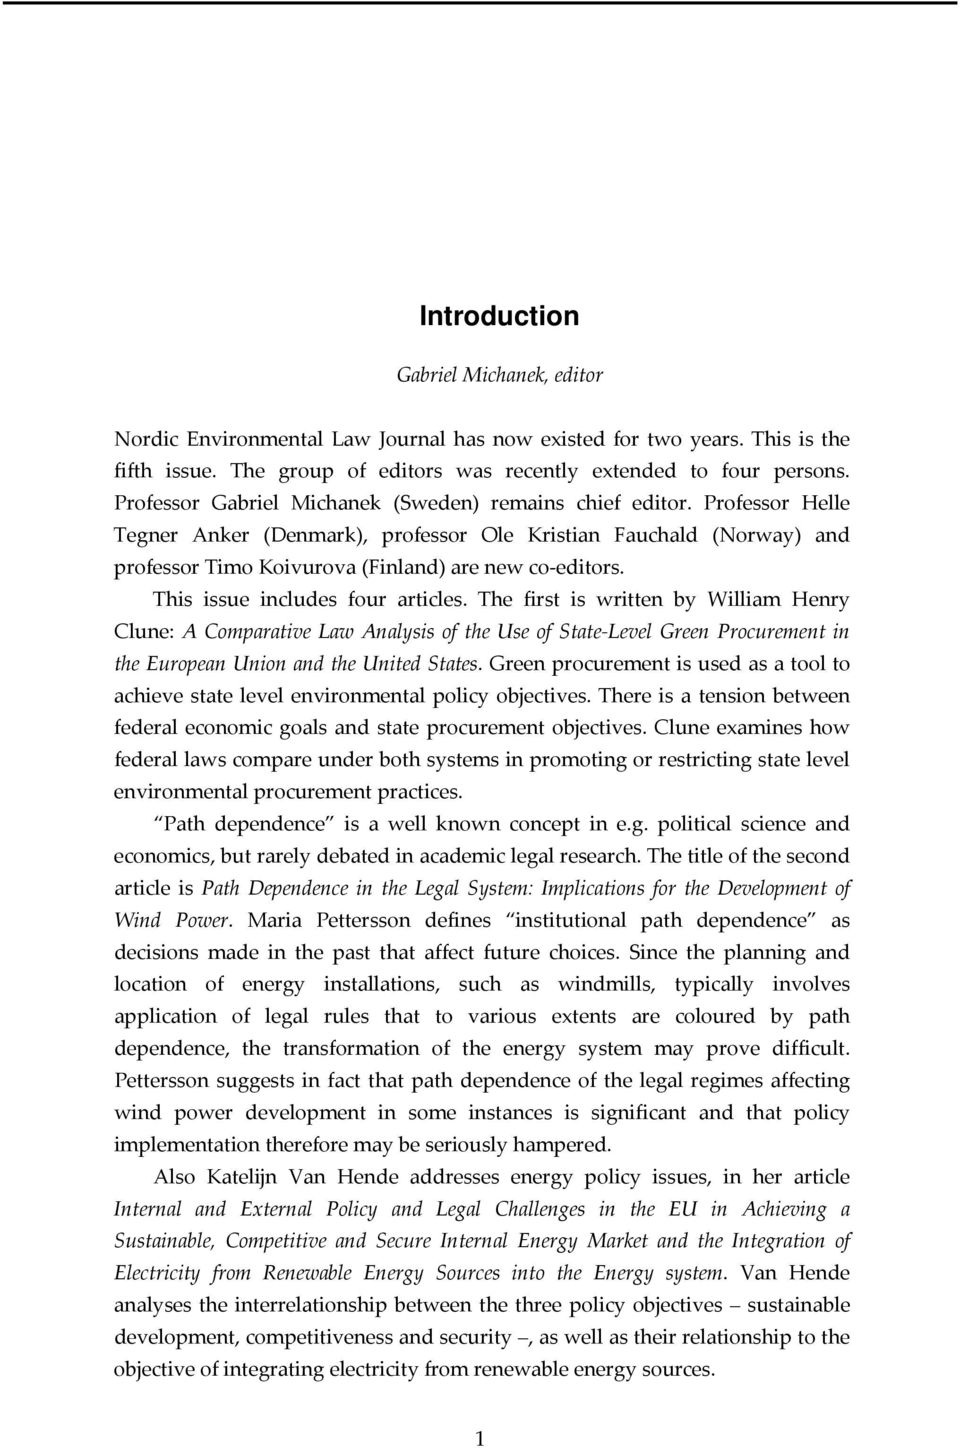 This issue includes four articles. The first is written by William Henry Clune: A Comparative Law Analysis of the Use of State Level Green Procurement in the European Union and the United States.